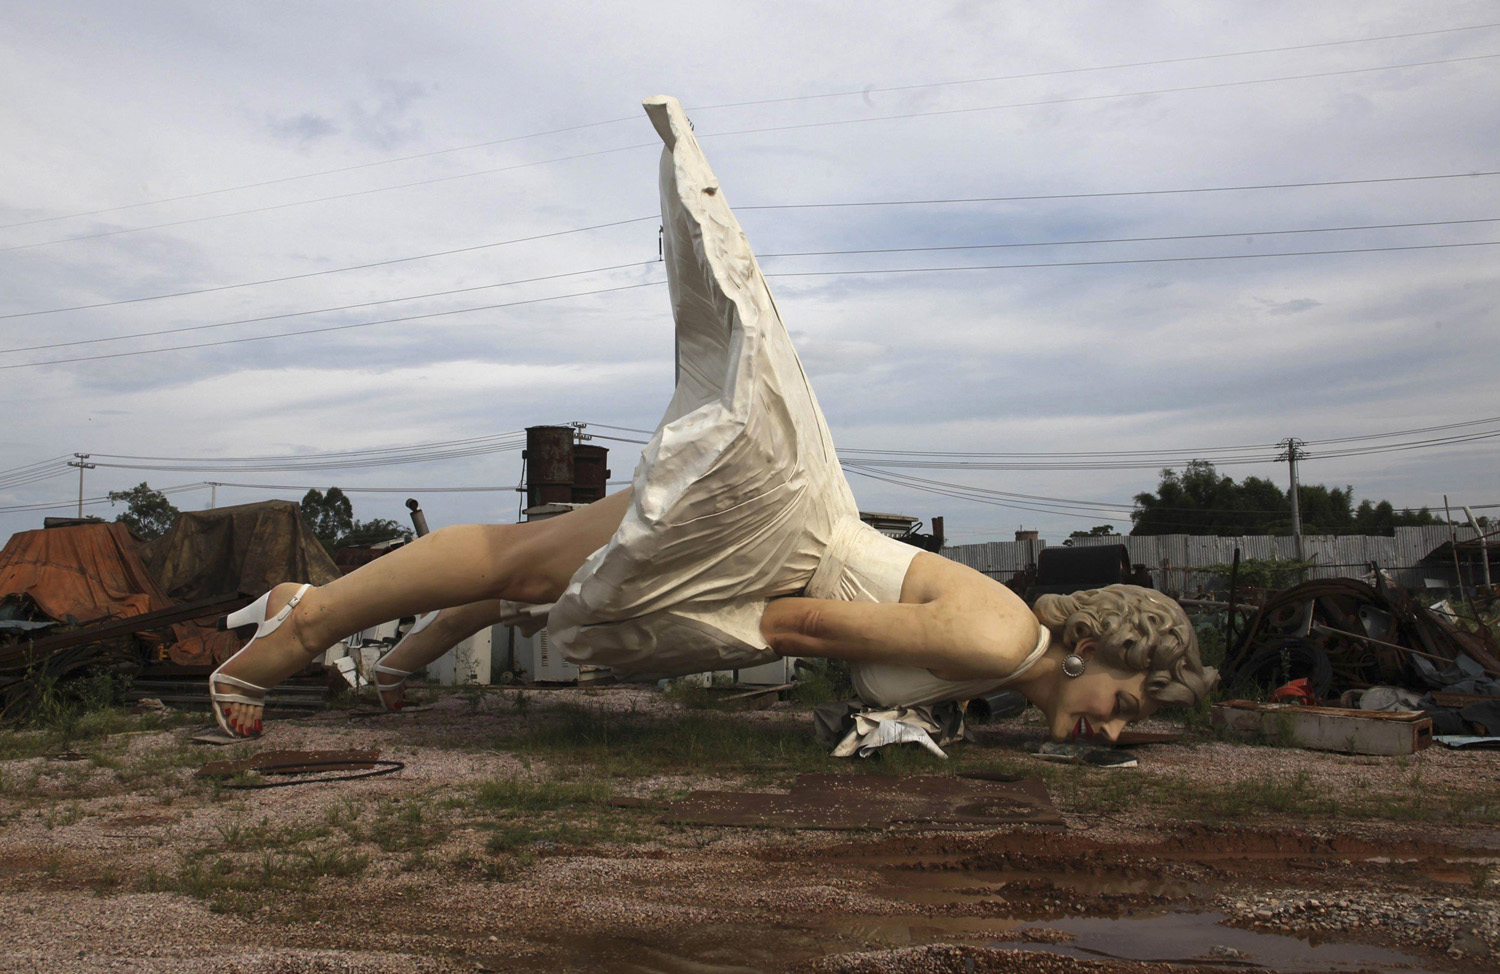 A giant statue of U.S. actress Marilyn Monroe is seen at the dump site of a garbage collecting company in Guigang, Guangxi Zhuang Autonomous Region on June 18, 2014.